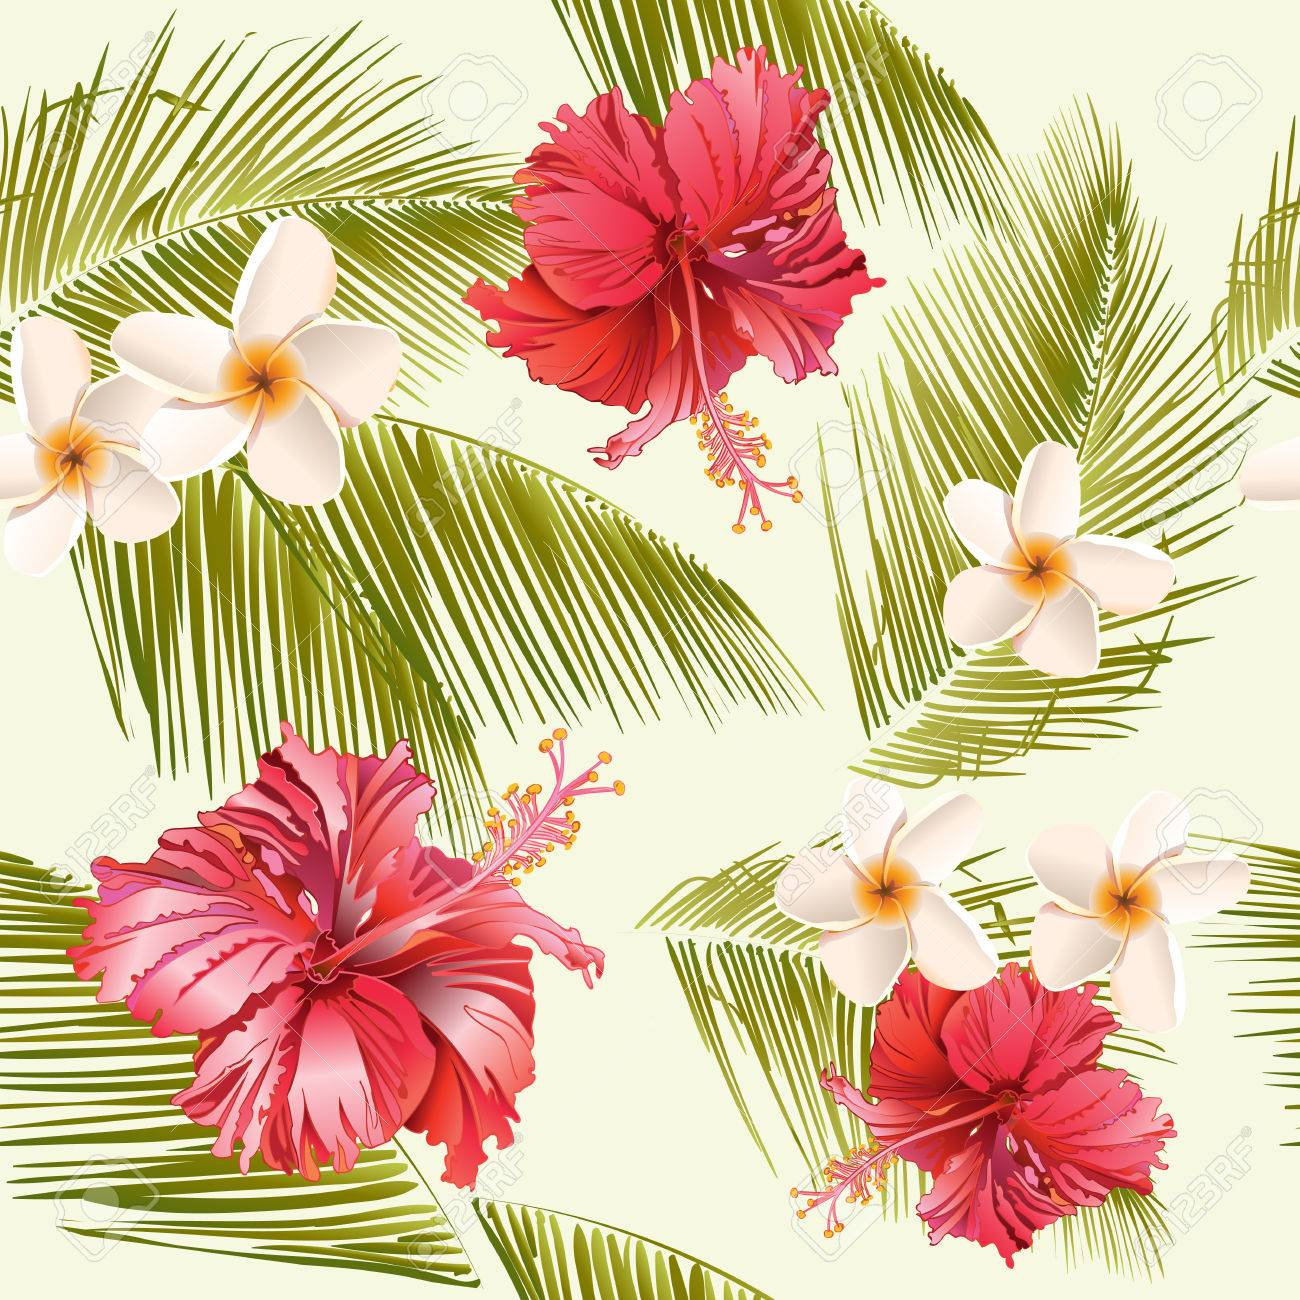 Tropical flowers and palm leaves seamless patternsign for tropical flowers and palm leaves seamless patternsign for cosmetics spa salon summer izmirmasajfo Gallery